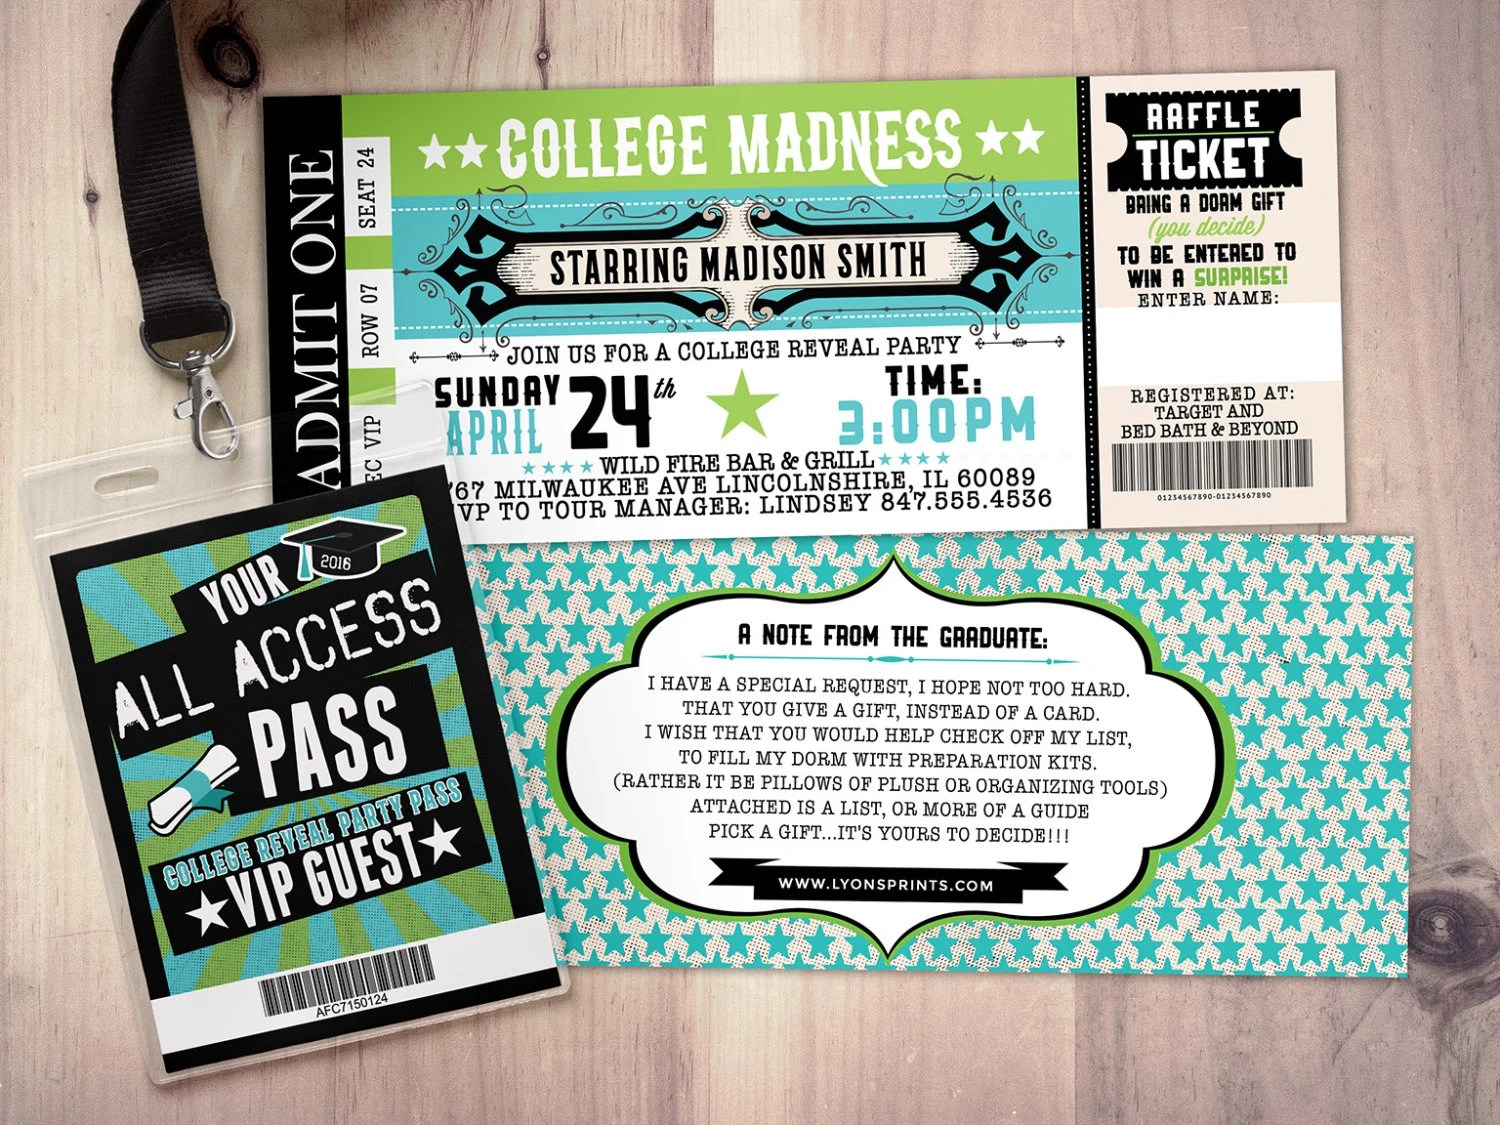 college reveal party concert ticket